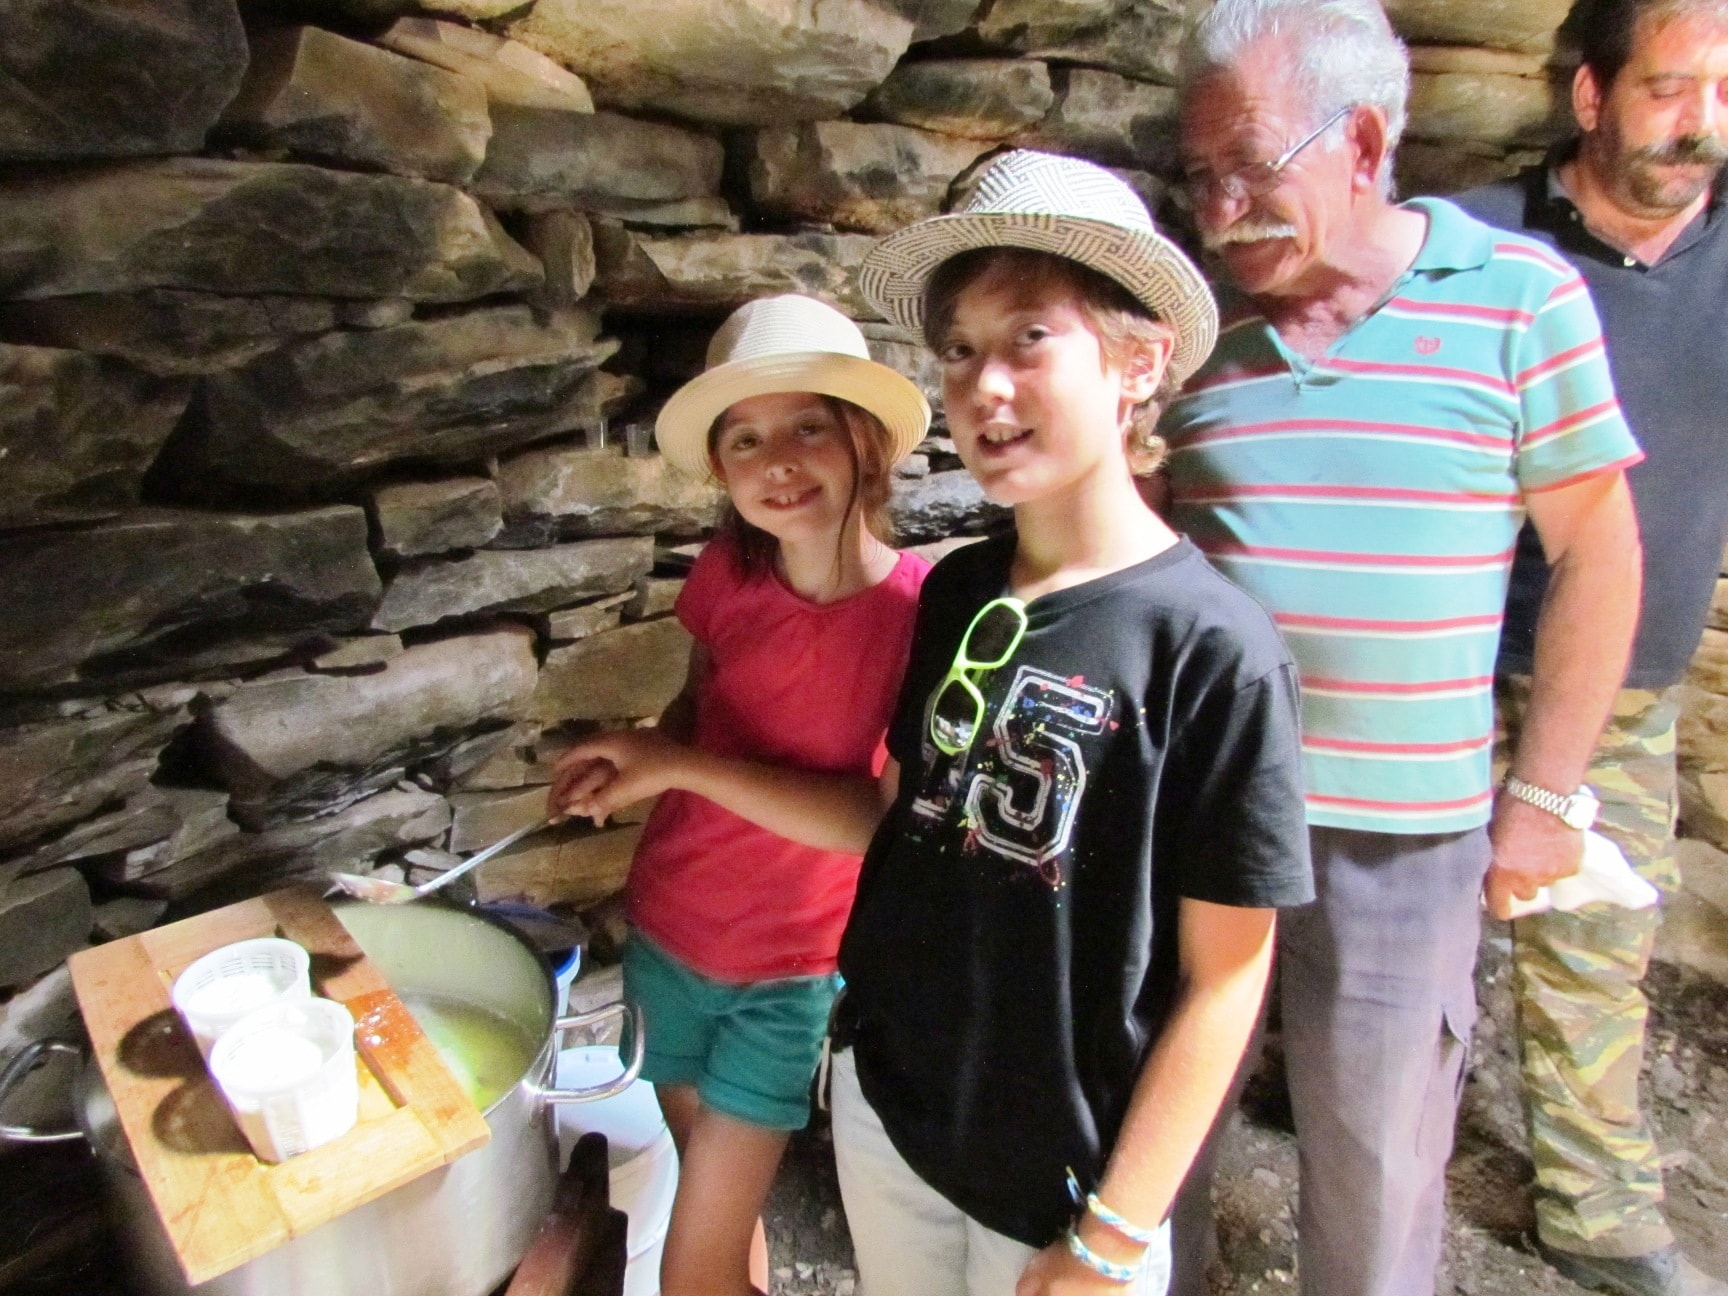 family guided tour kids love greece activities for families Crete Traditional Cretan Cheese Tasting and Making